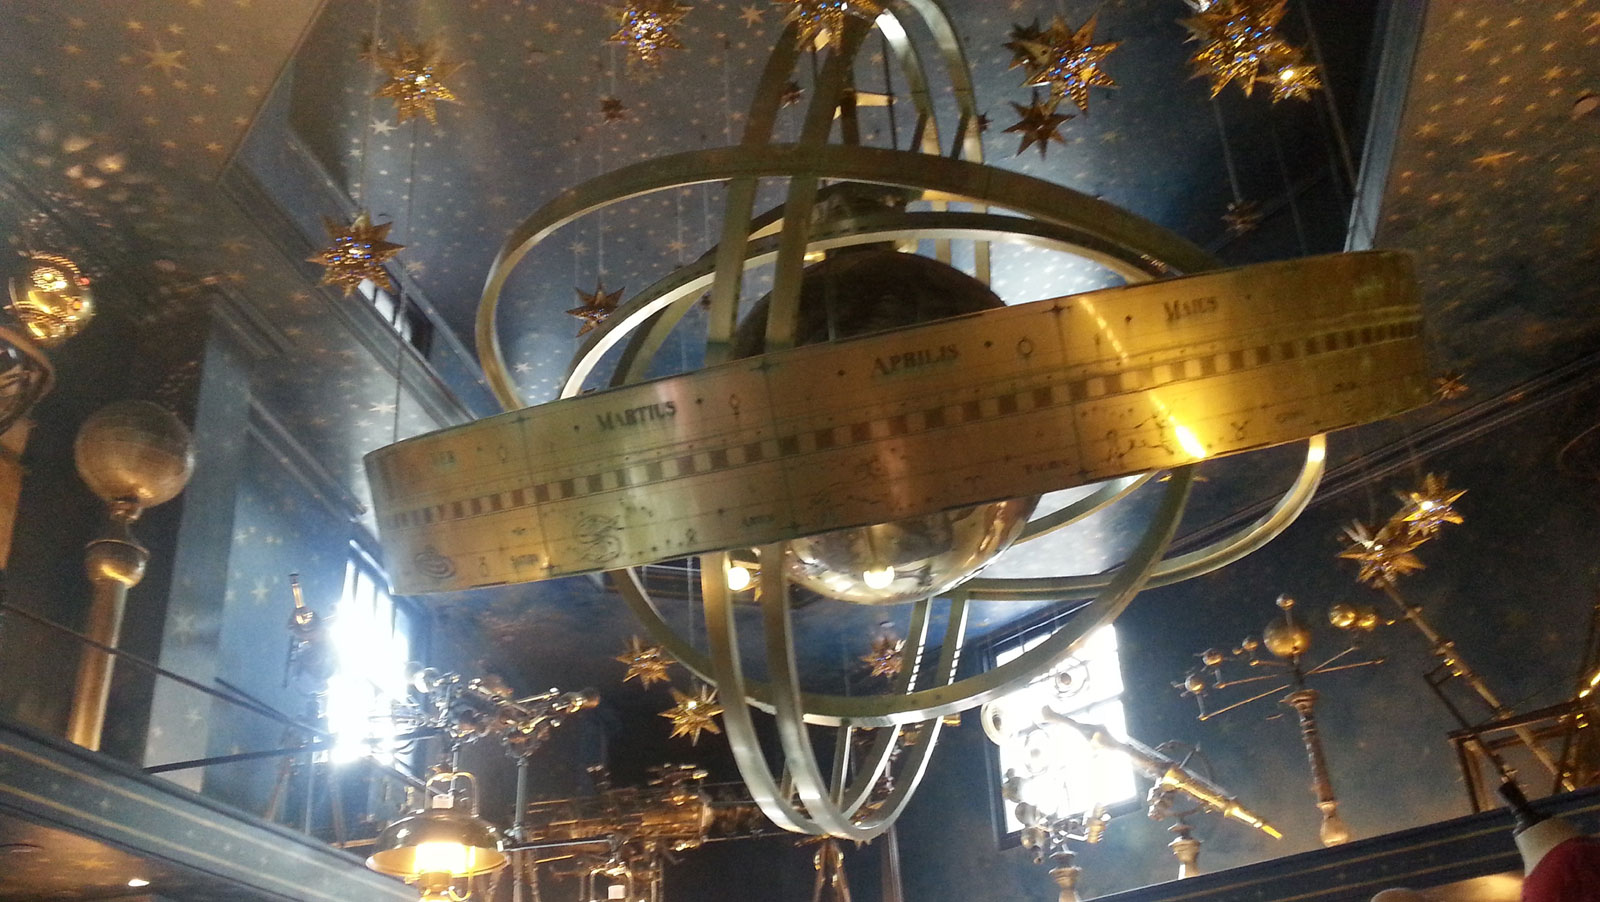 Orreries, globes, and telescopes on display in the Wiseacre's Wizarding Equipment store in Diagon Alley, December 2015.